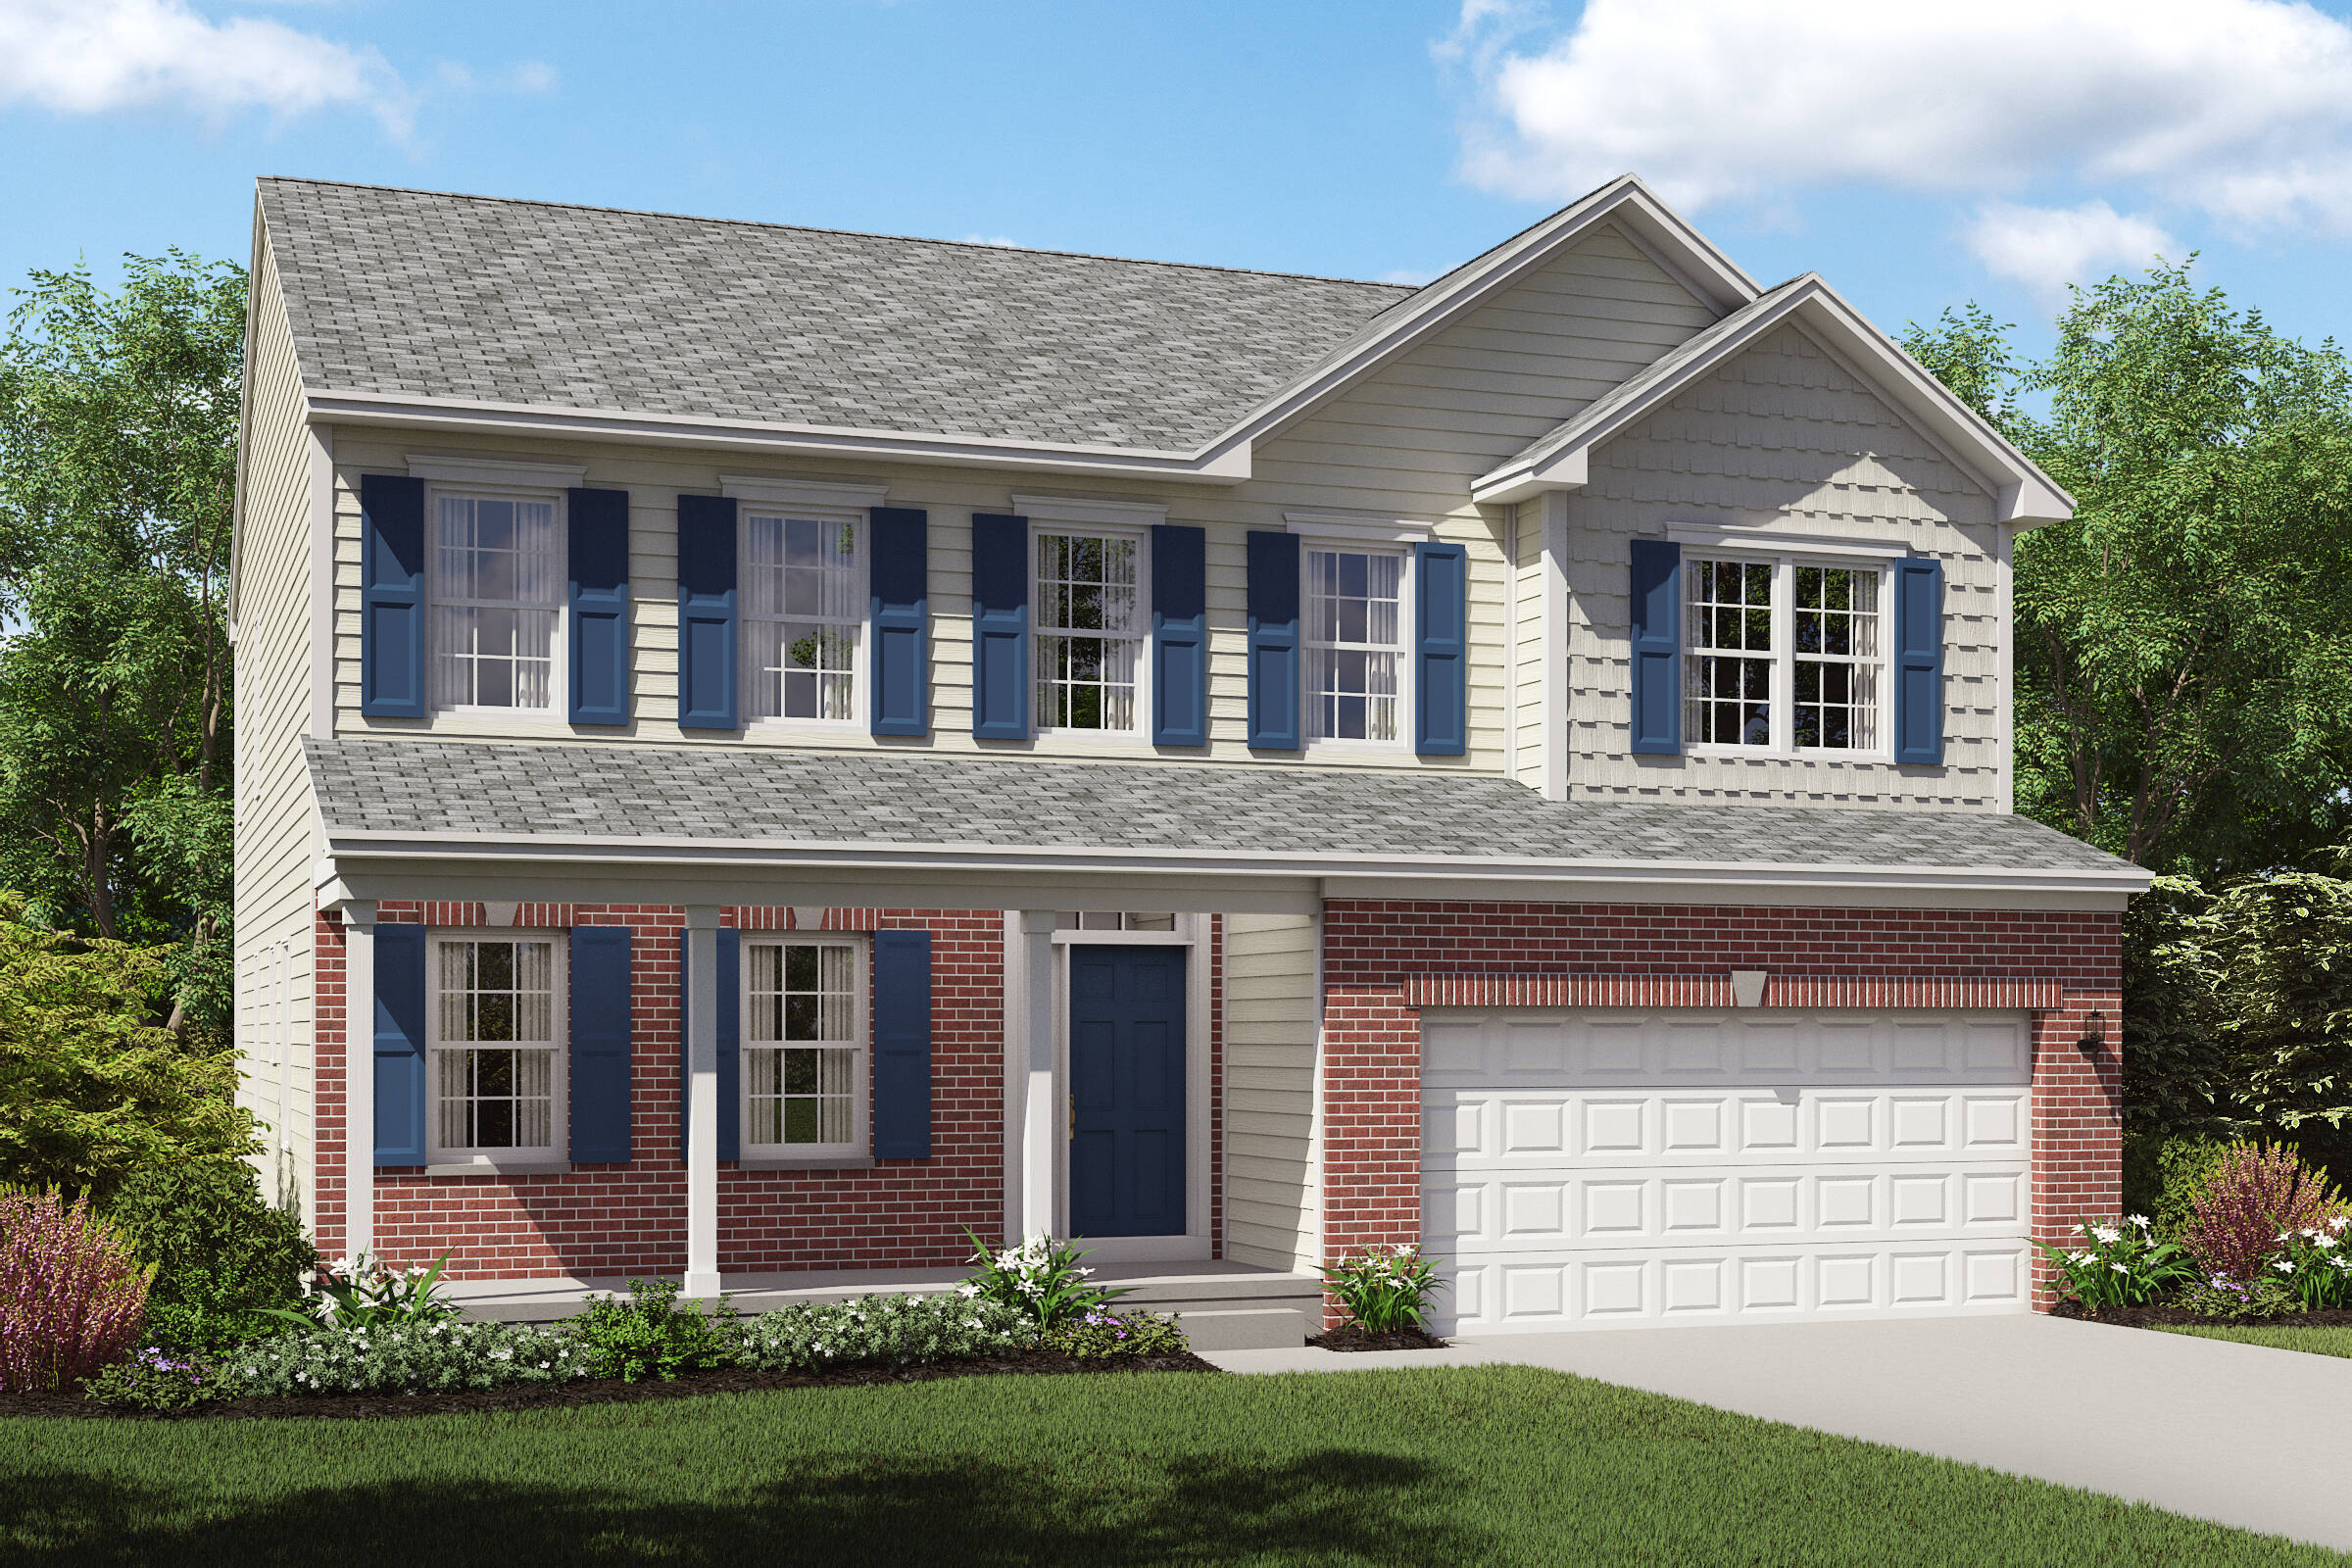 new home design brick exterior brantwood tallmadge ohio